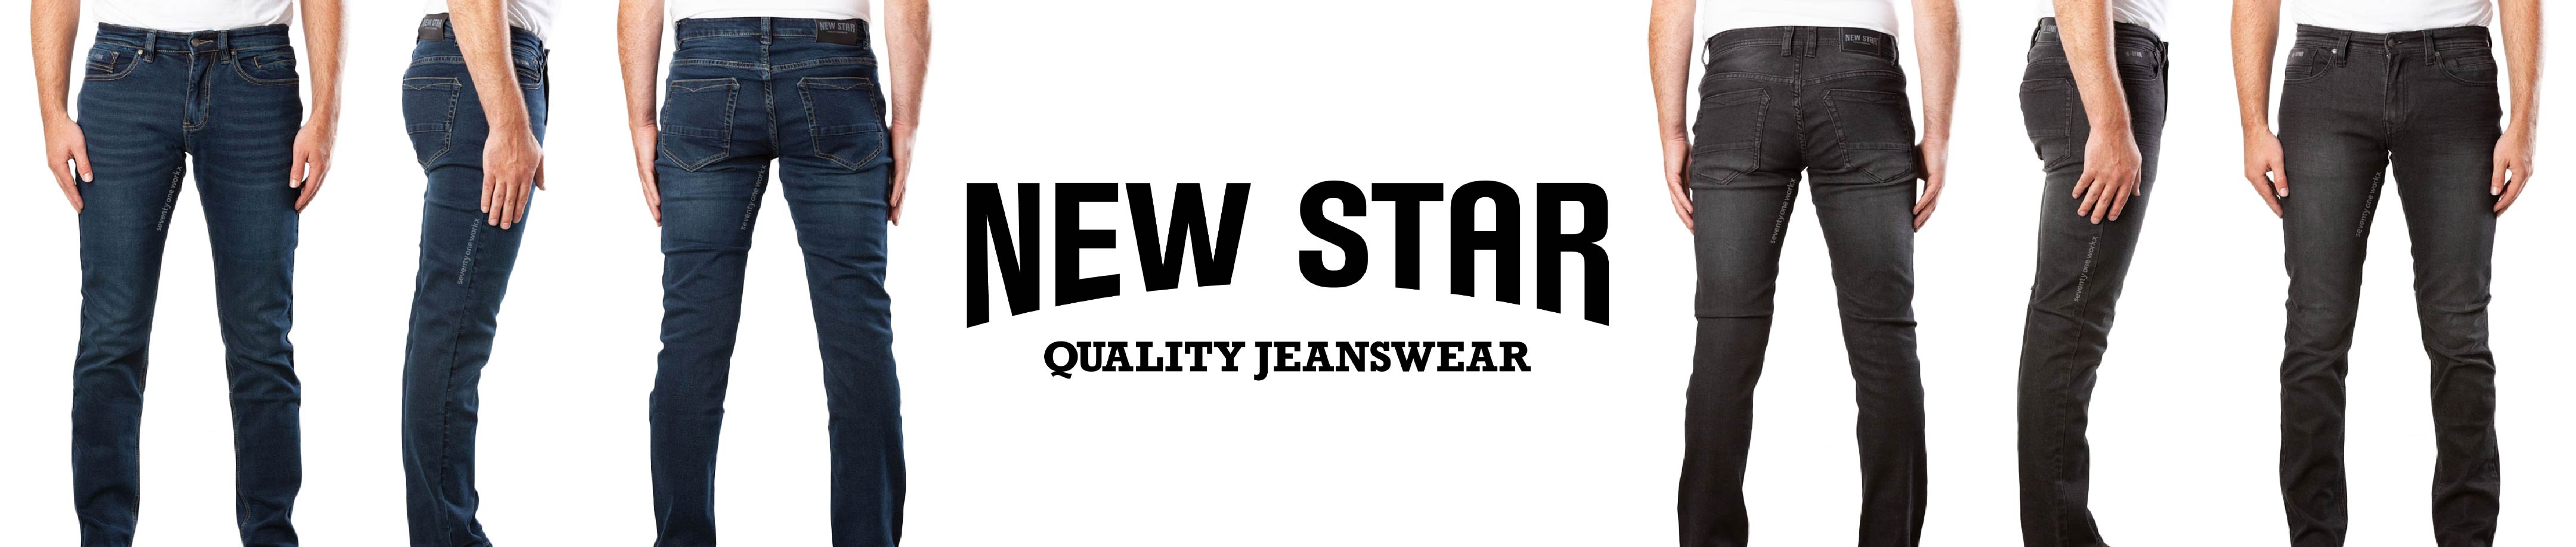 New Star jeanswear